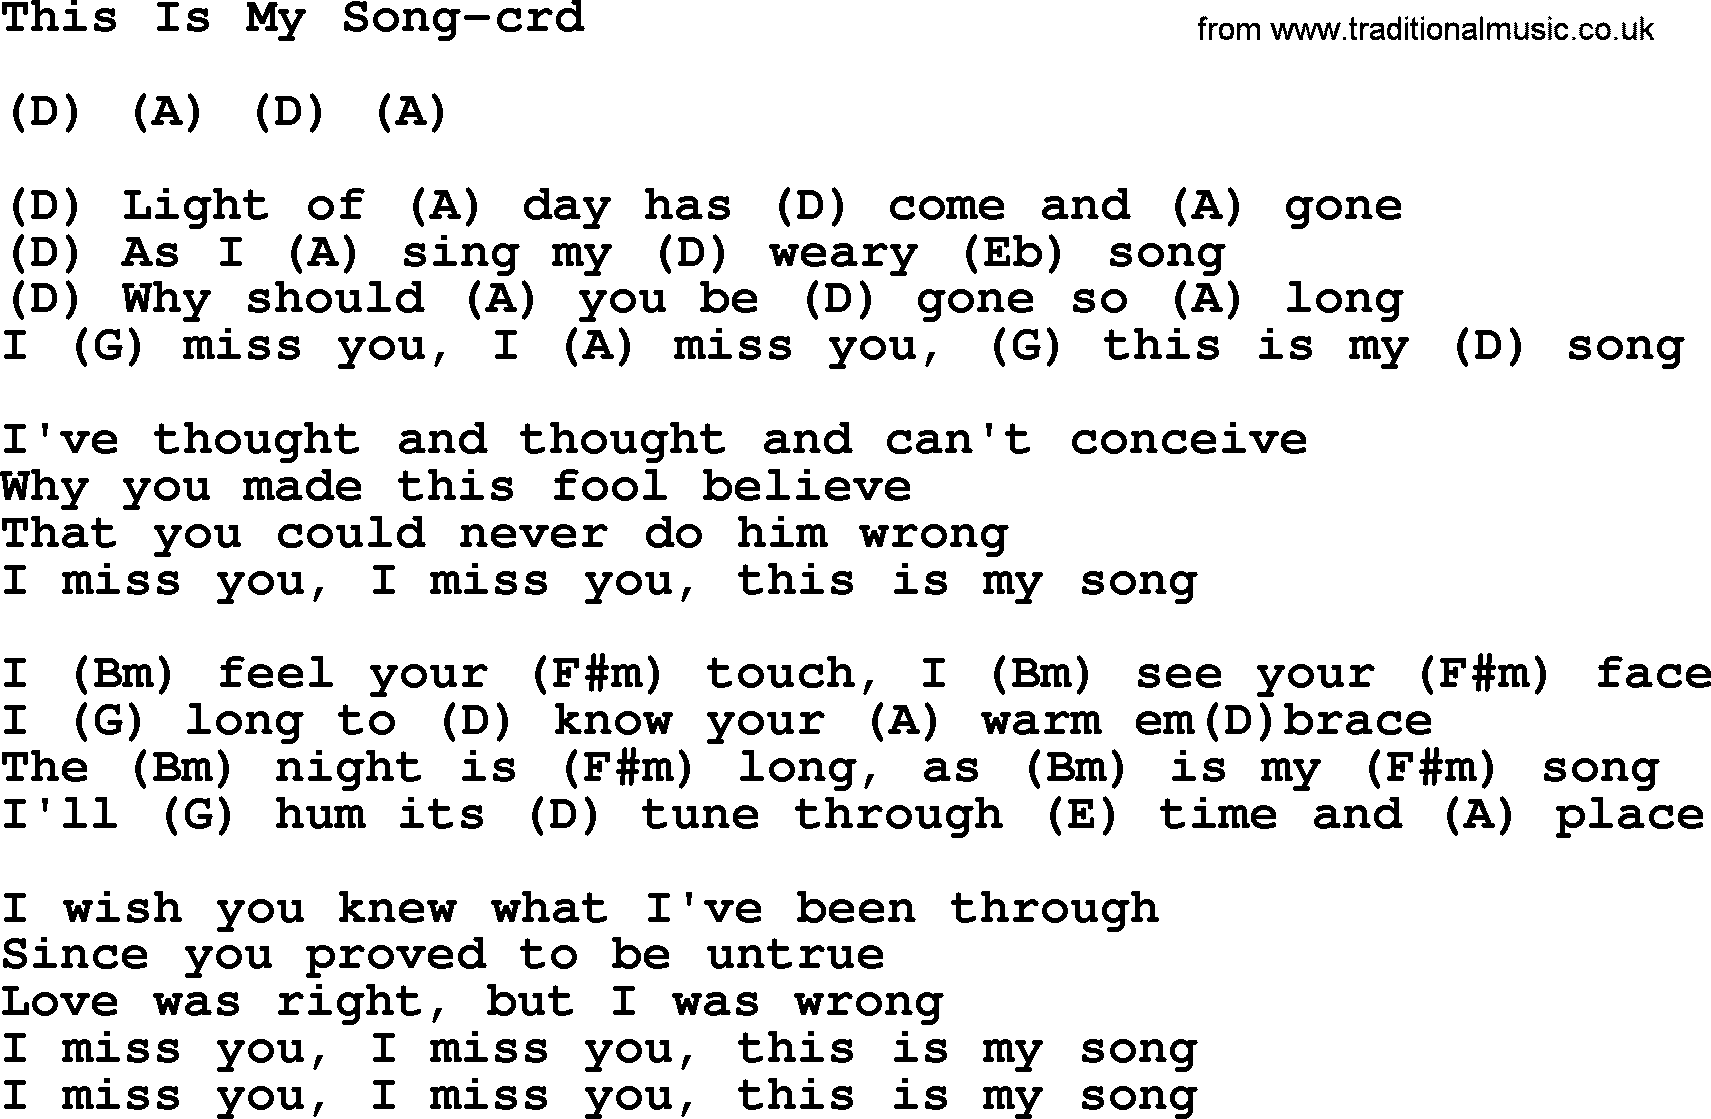 This Is My Song, by Gordon Lightfoot, lyrics and chords